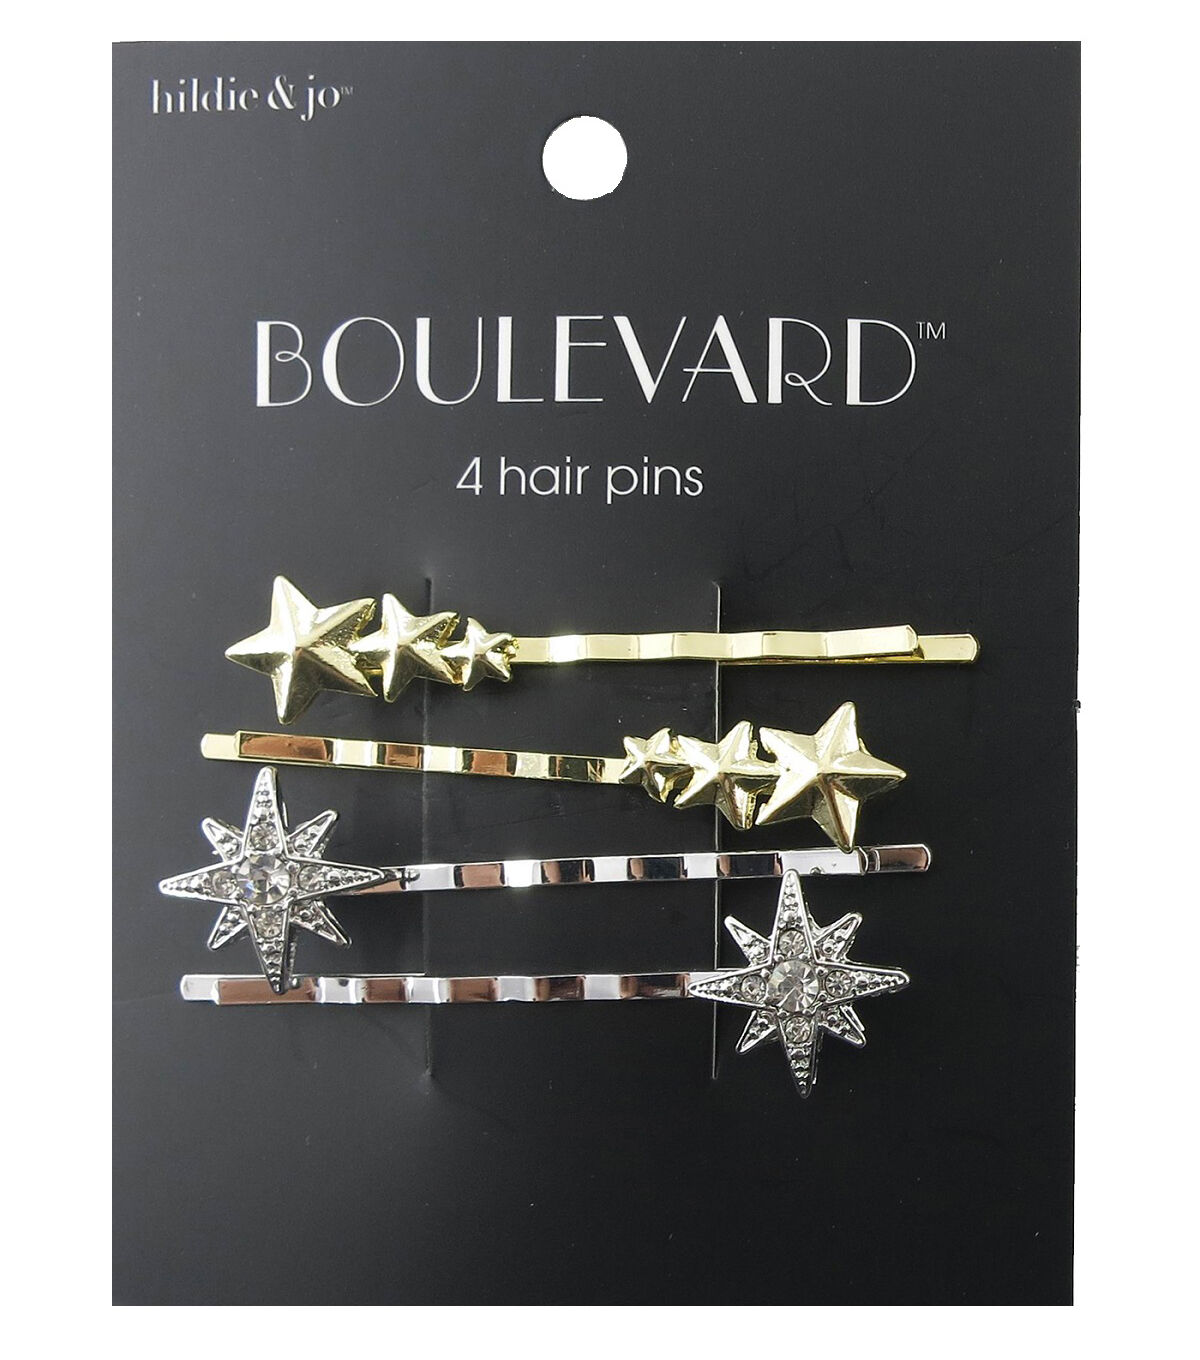 Vintage Hair Accessories: Combs, Headbands, Flowers, Scarf, Wigs hildie  jo Boulevard 4 Pack Gold  Silver Star Hair Pins - Crystal $3.59 AT vintagedancer.com